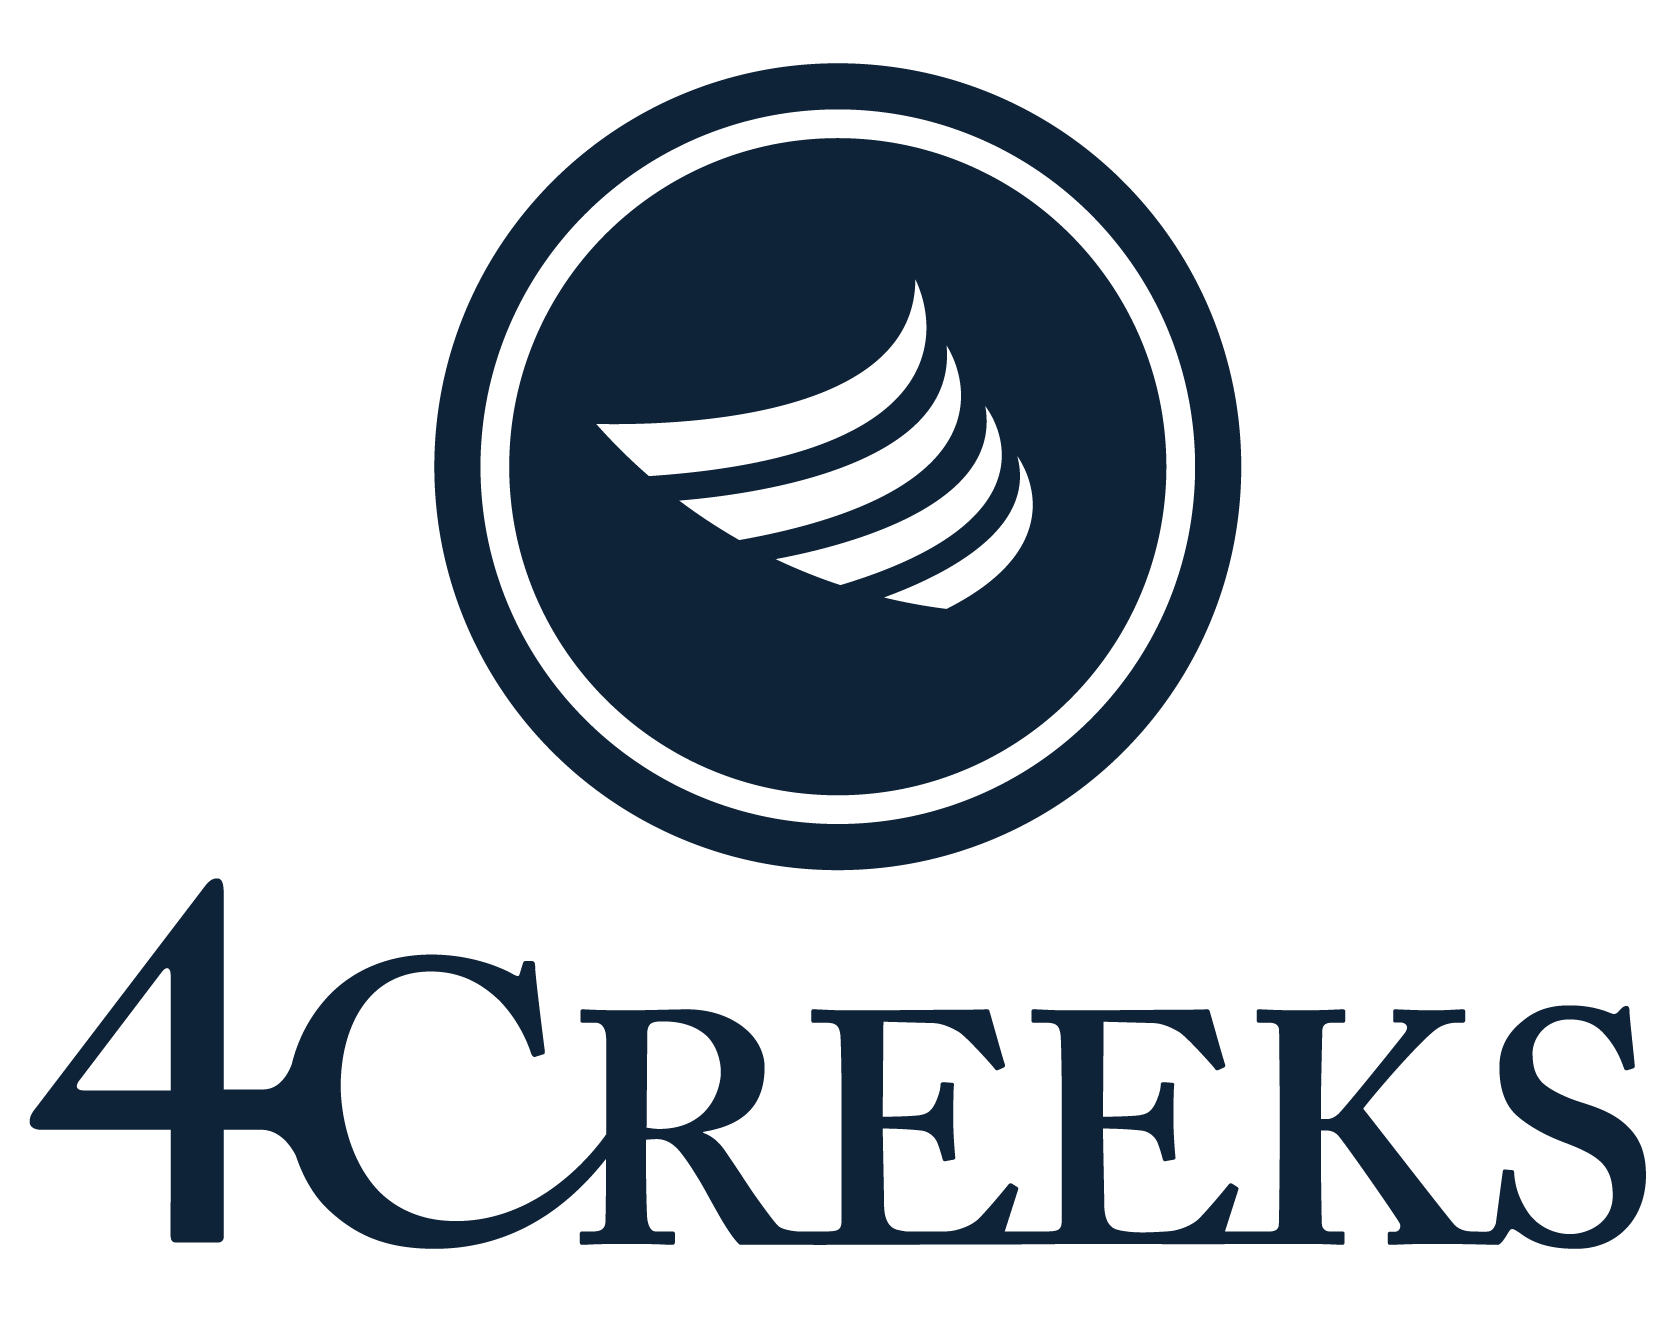 4Creeks Primary Logo-19.png